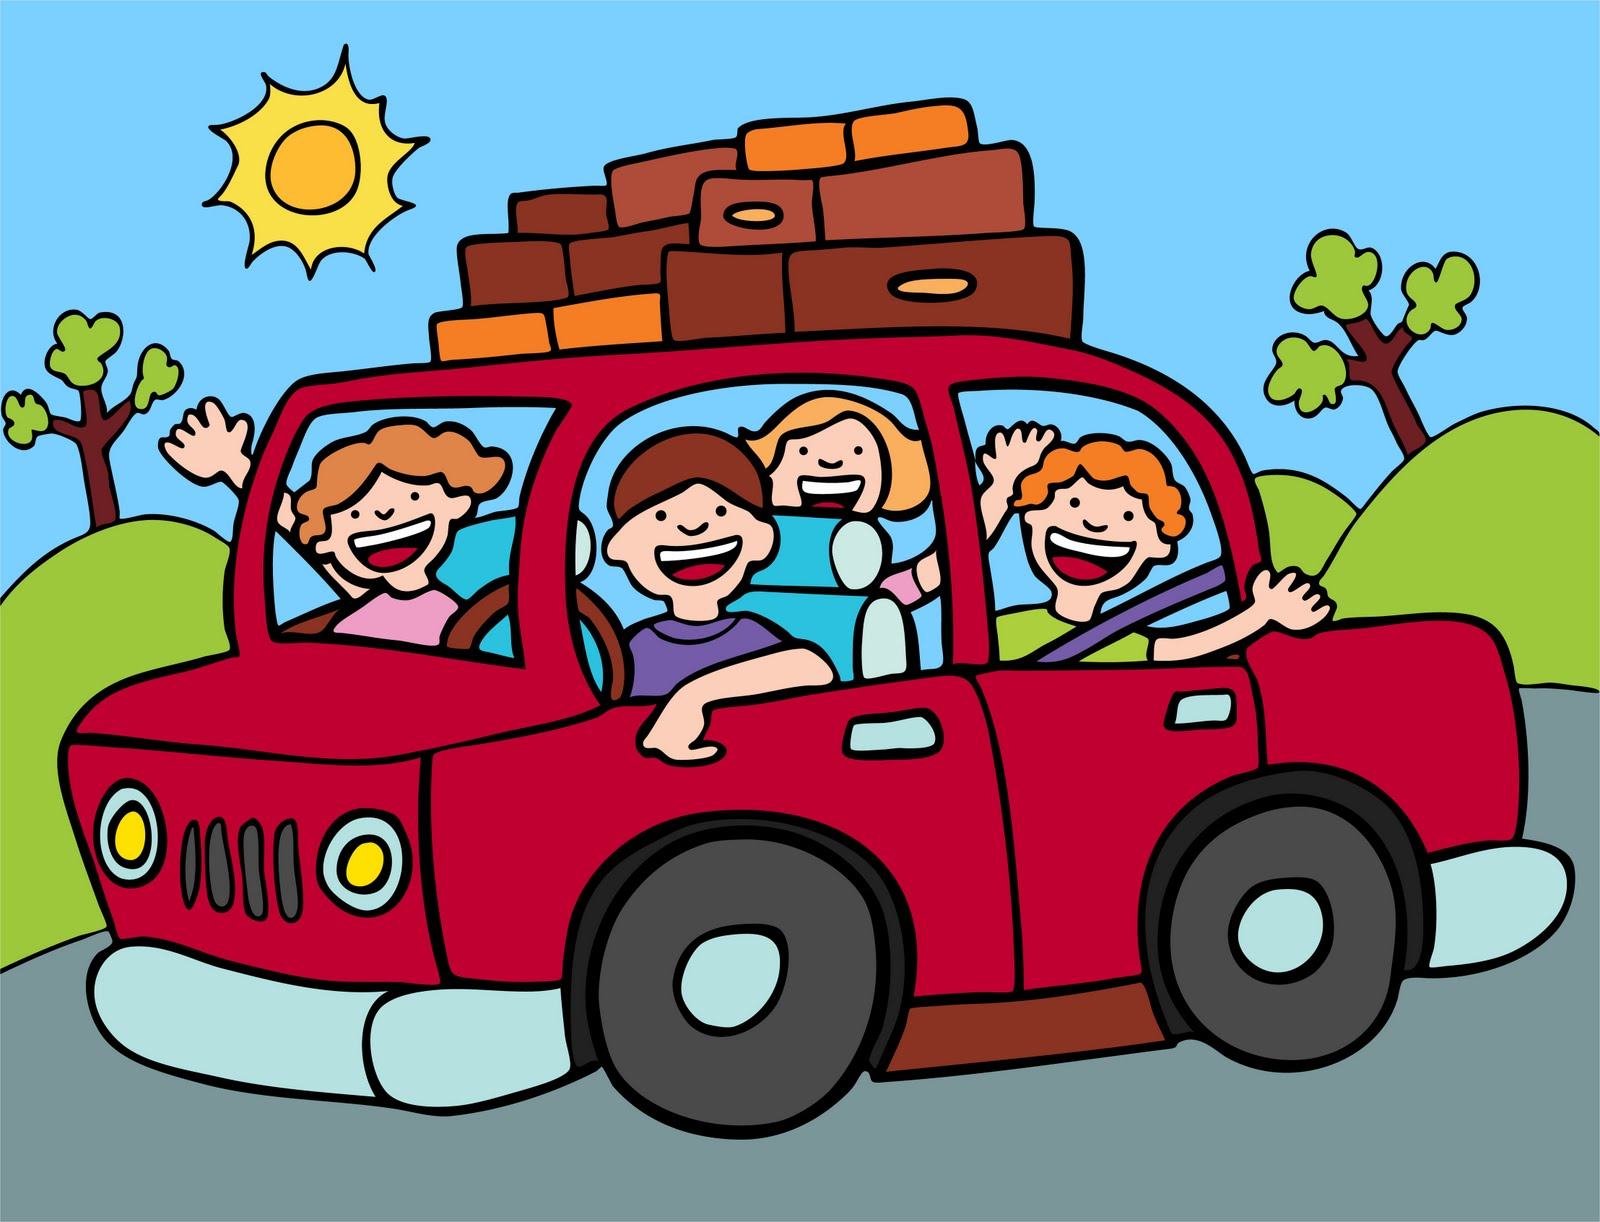 Animated Picture Of A Family - ClipArt Best